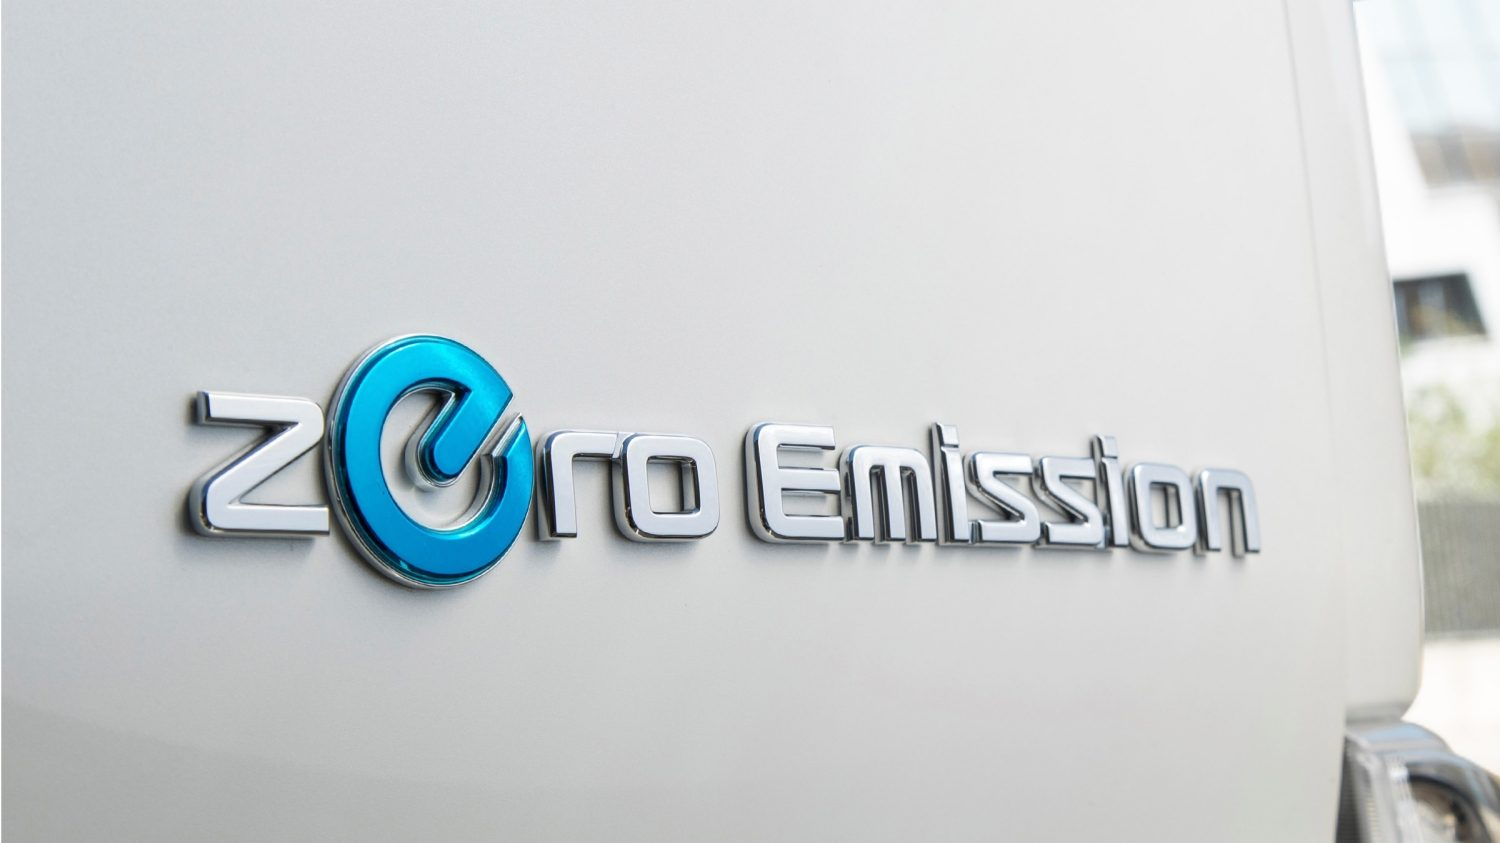 New Nissan e-NV200 detail shot of the zero emission logo